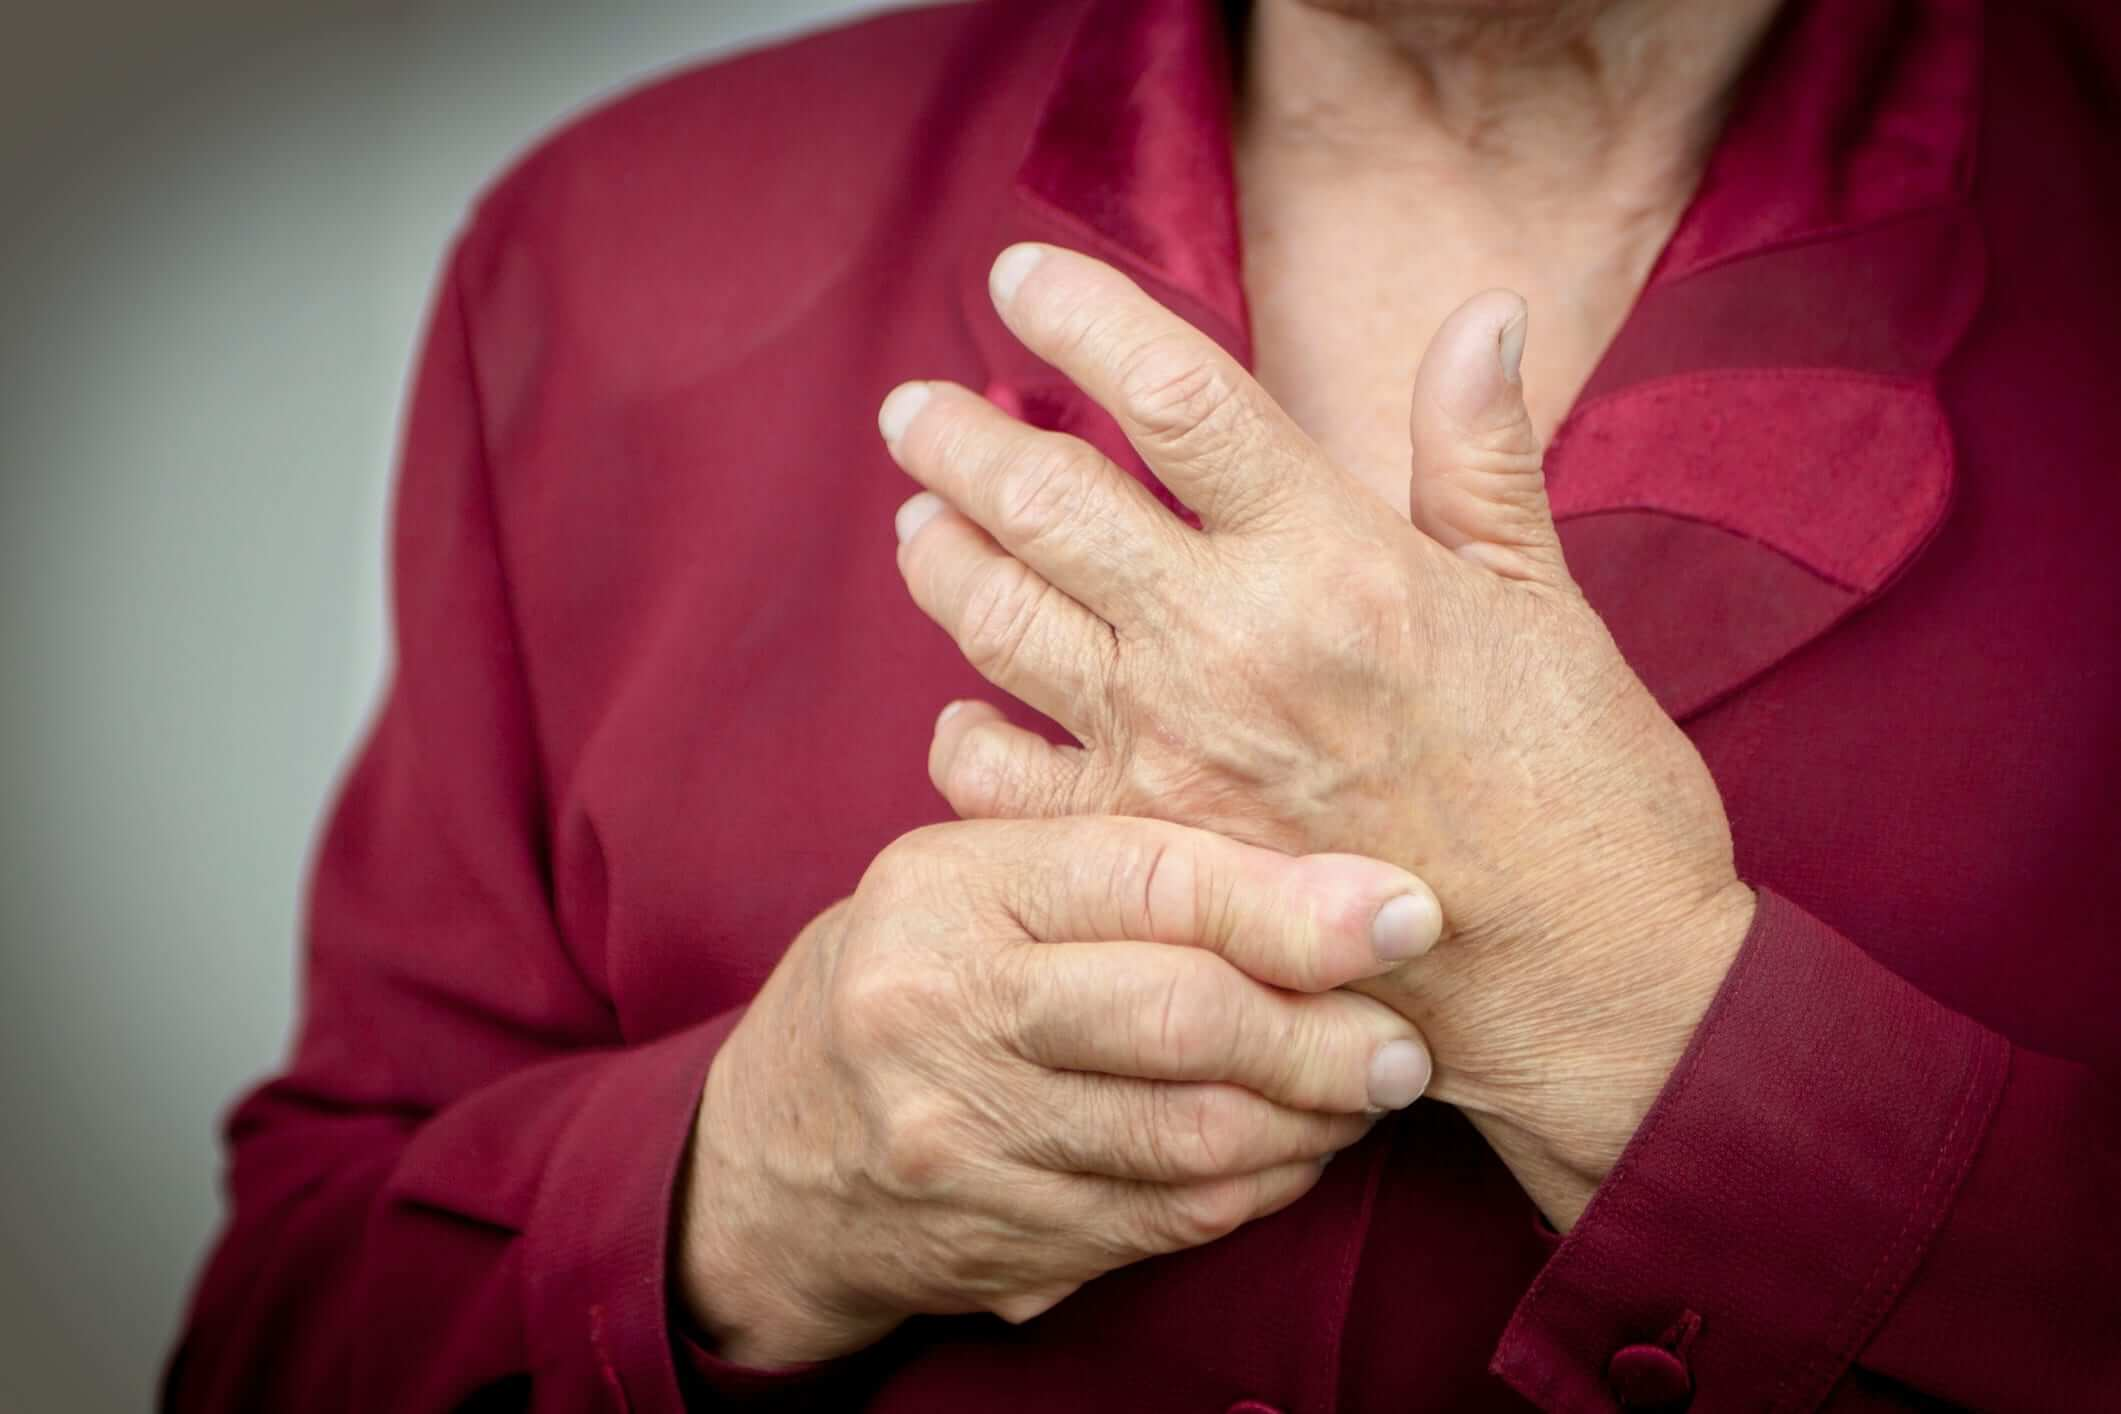 person with arthritis pain in hand